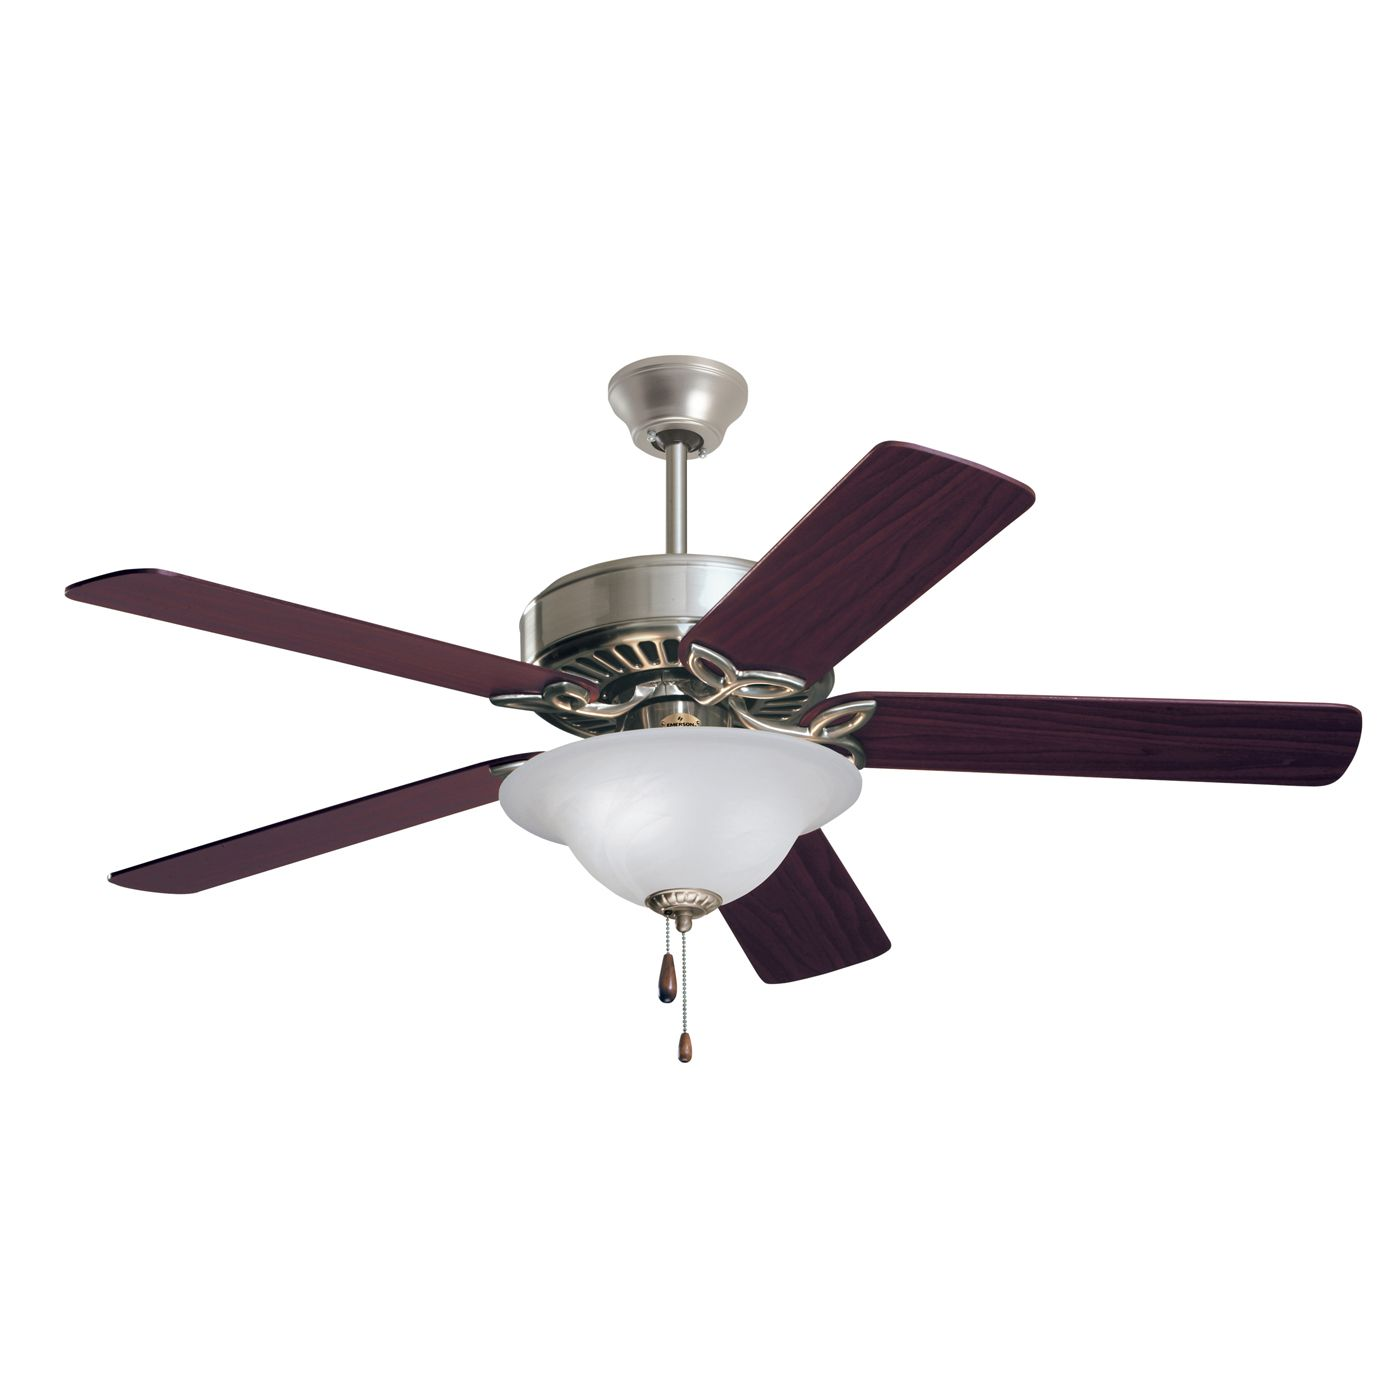 Emerson electric cf712 3 light 50 in ceiling fan atg stores emerson electric cf712 3 light 50 in ceiling fan atg stores aloadofball Choice Image